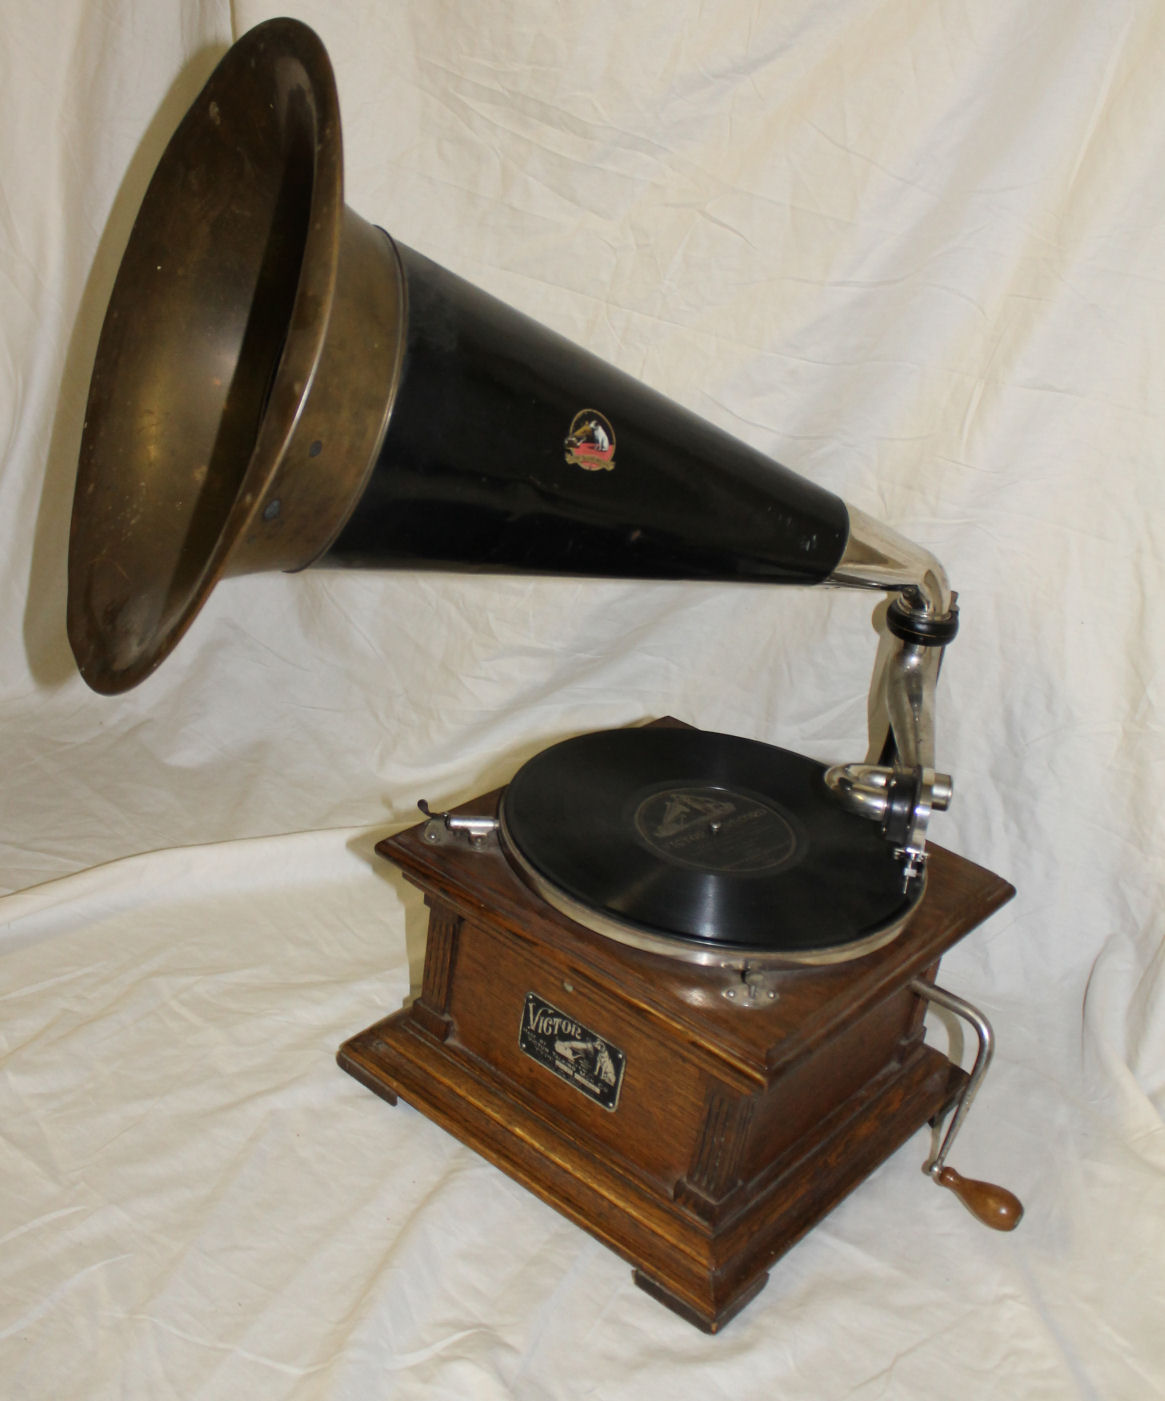 Bargain Johns Antiques  Antique Oak Victor Record Player with Horn and Records  Bargain John